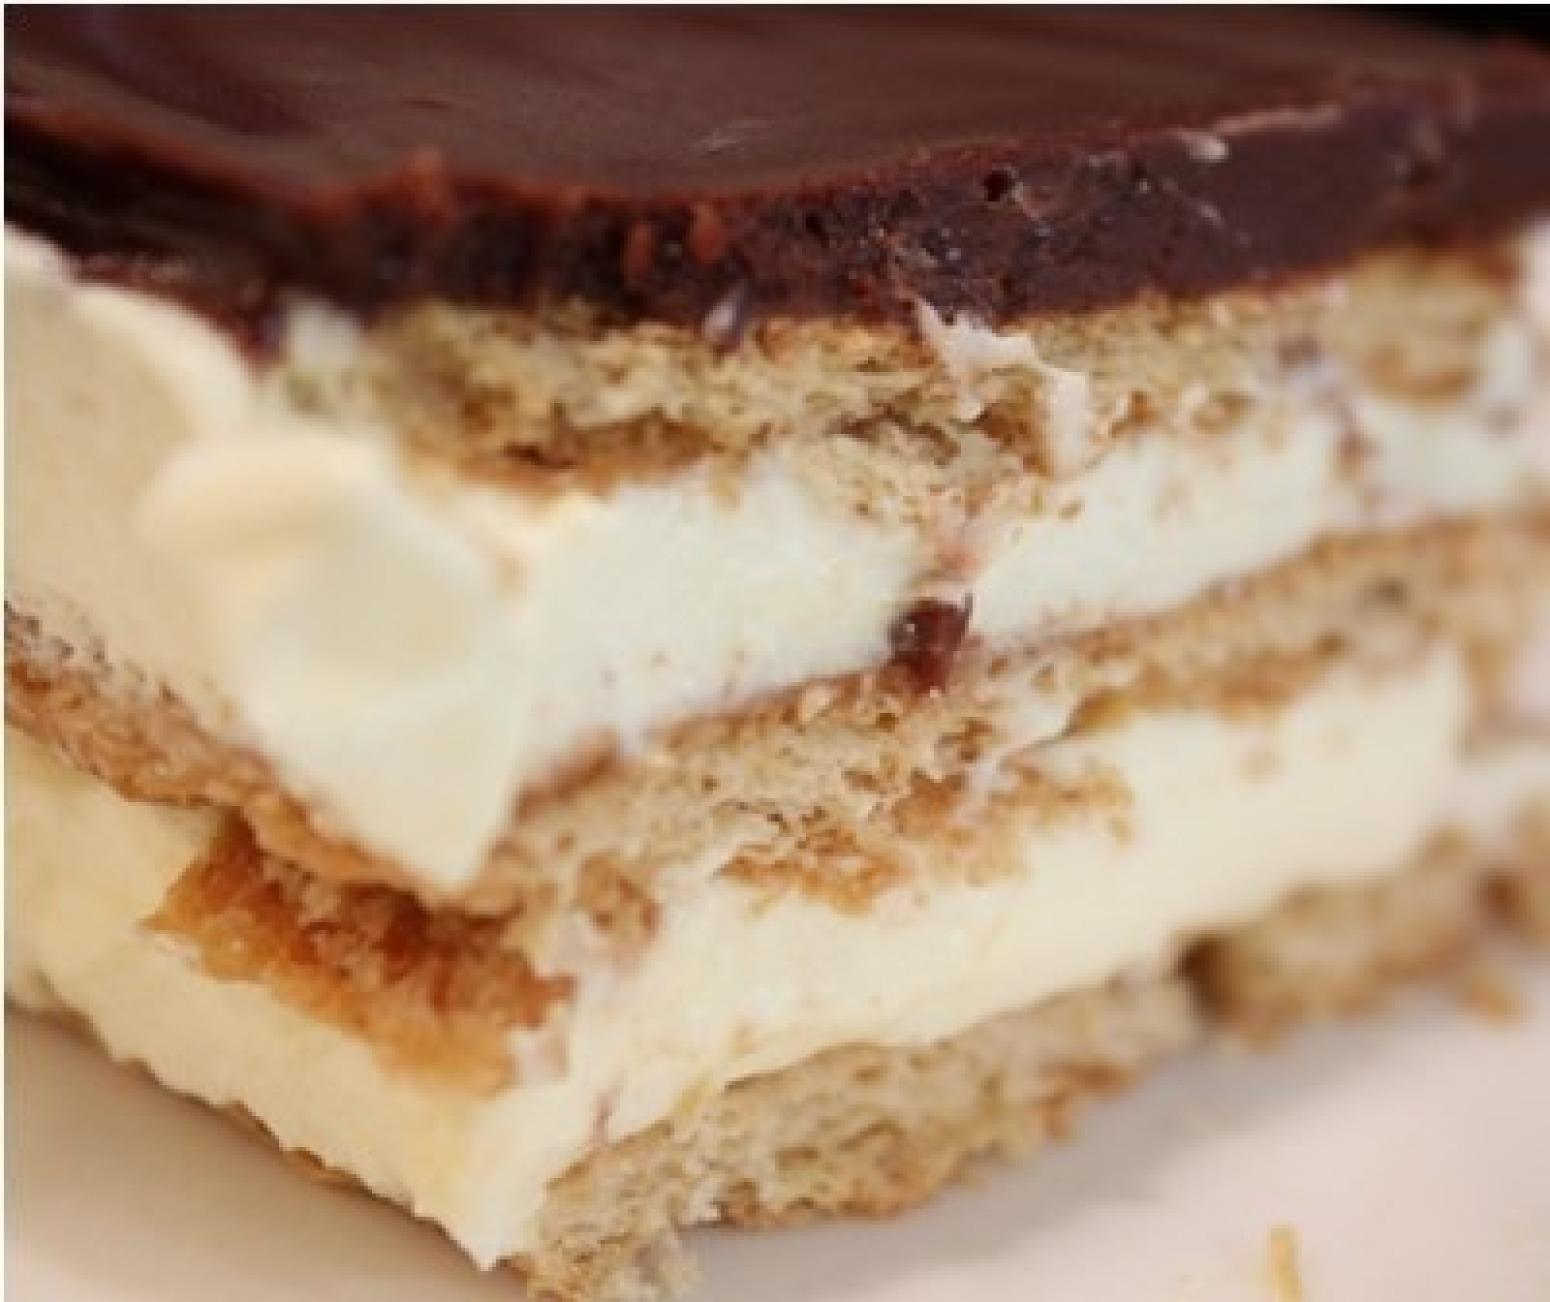 Chocolate Eclair Dessert Recipe